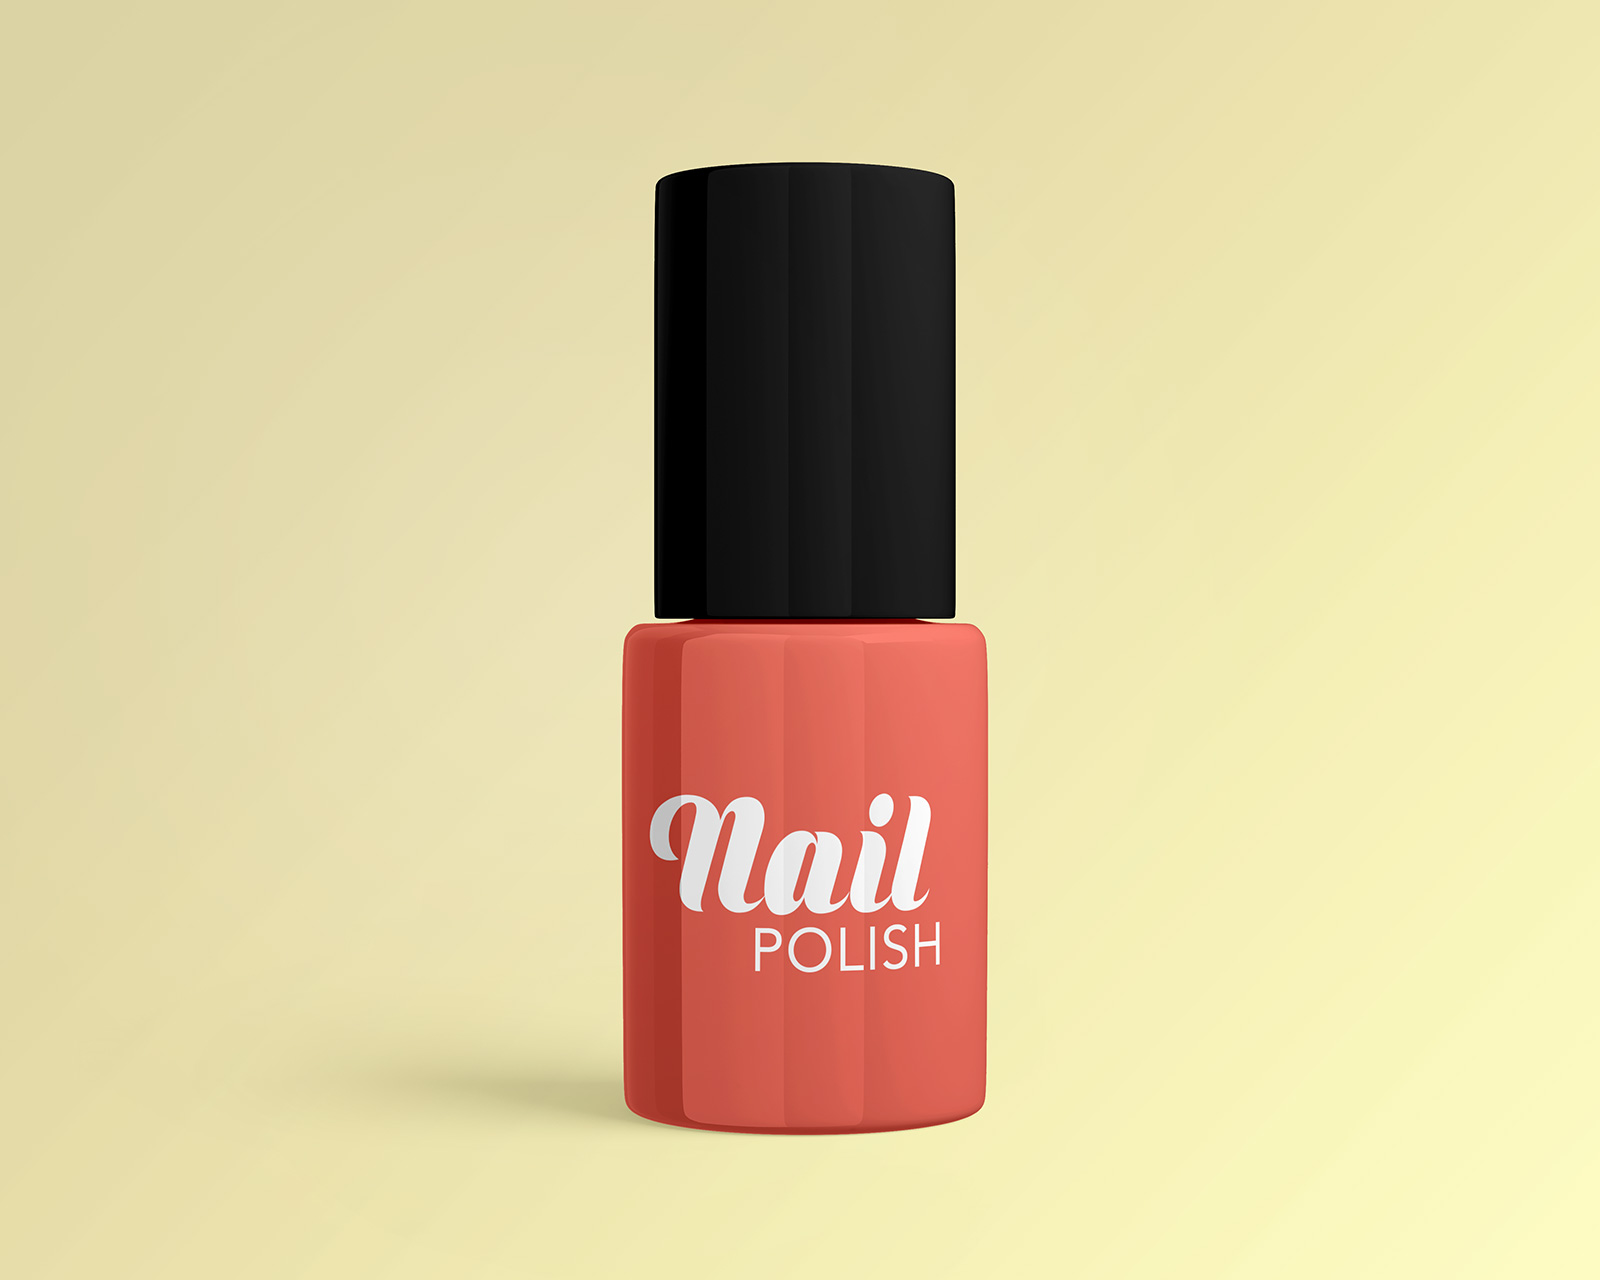 Free-Nail-Polish-Bottle-Mockup-PSD-Set-2